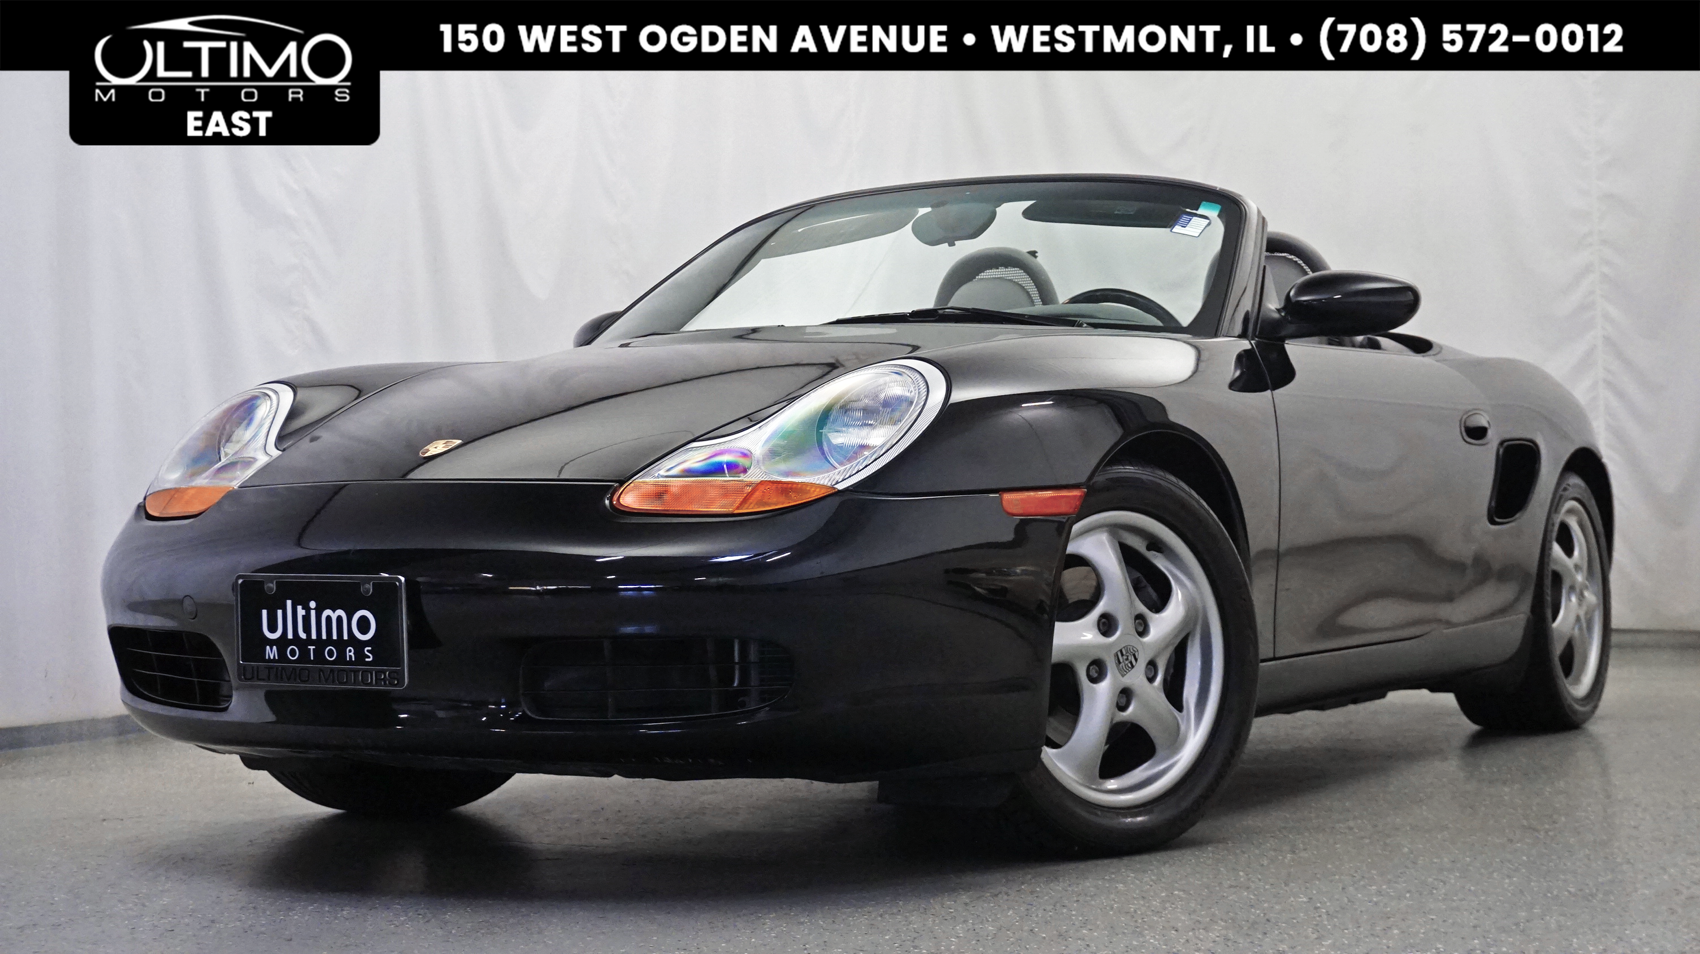 Pre-Owned 2000 Porsche Boxster 5-Speed Manual, Removable Hard Top, 1-Owner!